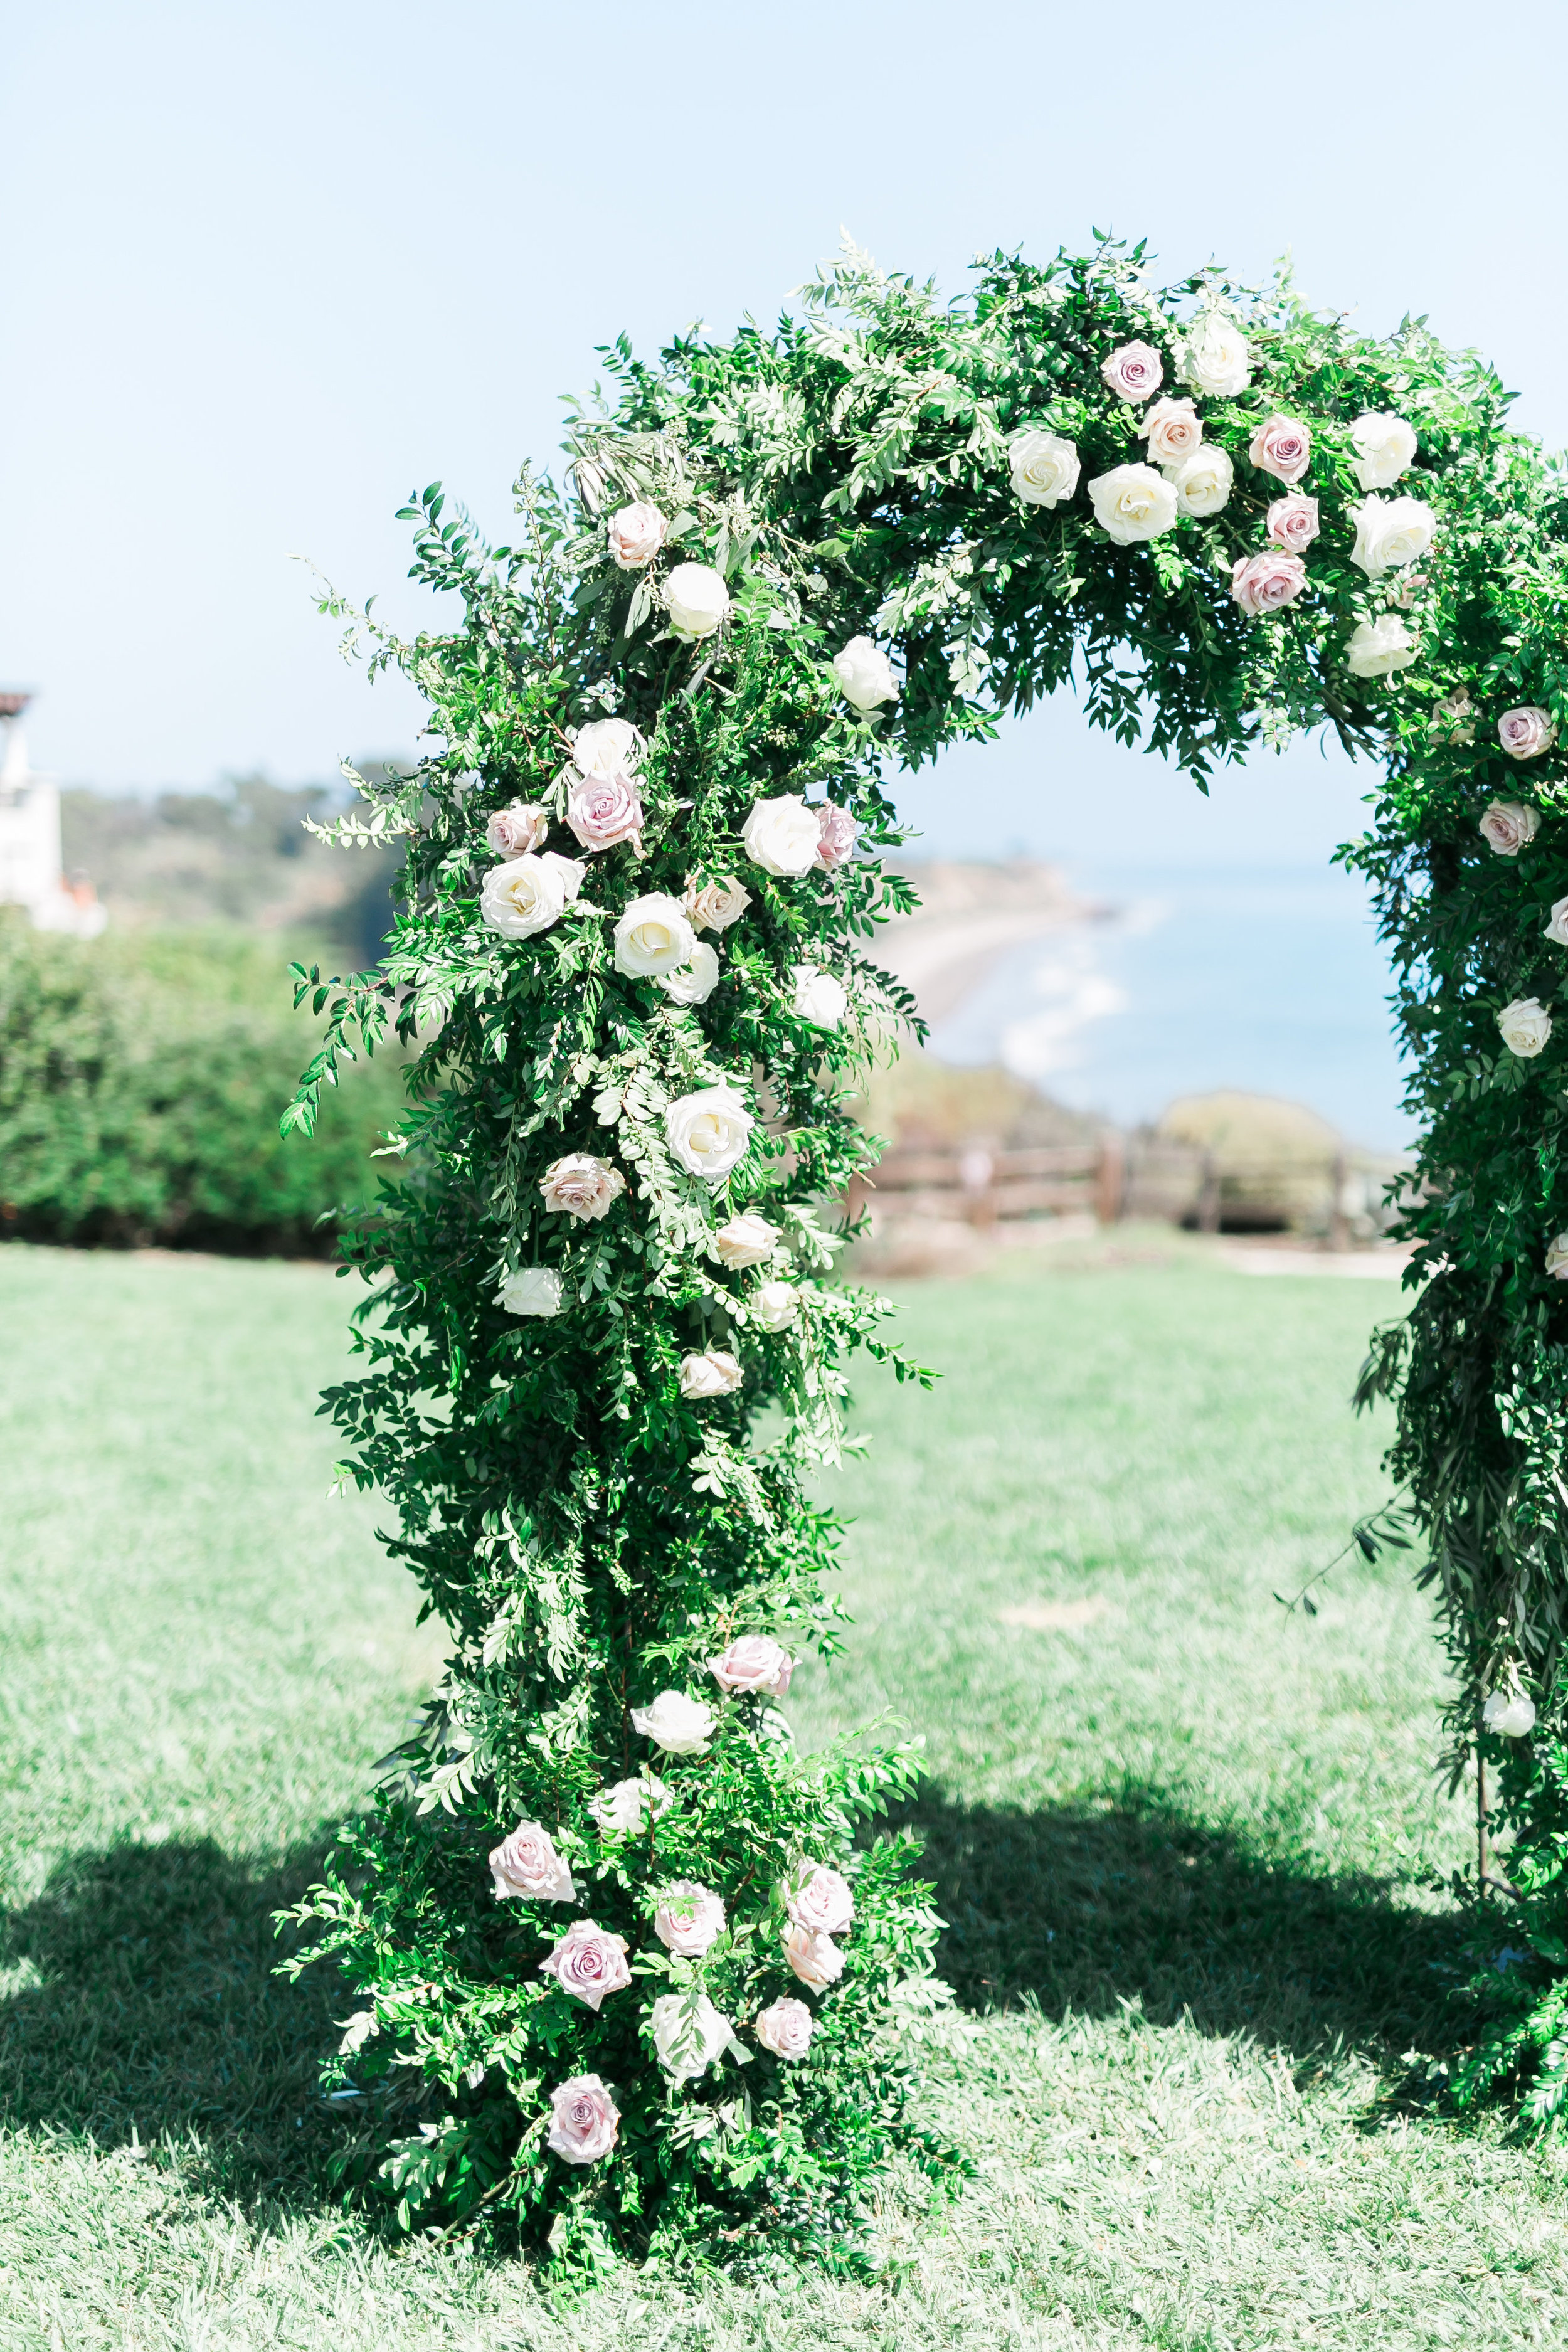 Ceremony arch at The Ritz Carlton Bacara Santa Barbara.   CREDITS:  Destination Wedding Planner  ANDREA EPPOLITO EVENTS  · Images by  J.ANNE P  HOTOGRAPHY  · Video  HOO FILMS  · Venue Ritz Carlton Bacara Santa Barbara ·Gown  MONIQUE LHULLIER ·Bridesmaids Dresses  SHOW ME YOUR MUMU ·Stationery  SHE PAPERIE ·Bride's Shoes  BADGLEY MISCHKA ·Hair and Makeup  TEAM HAIR AND MAKEUP · Floral  BLUE MAGNOLIA ·Linen  LA TAVOLA ·Decor Rentals  TENT MERCHANT ·Calligraphy  EBB ·Lighting  FIVE STAR AV ·Ice Cream Station  MCCONNELL'S ICE CREAM